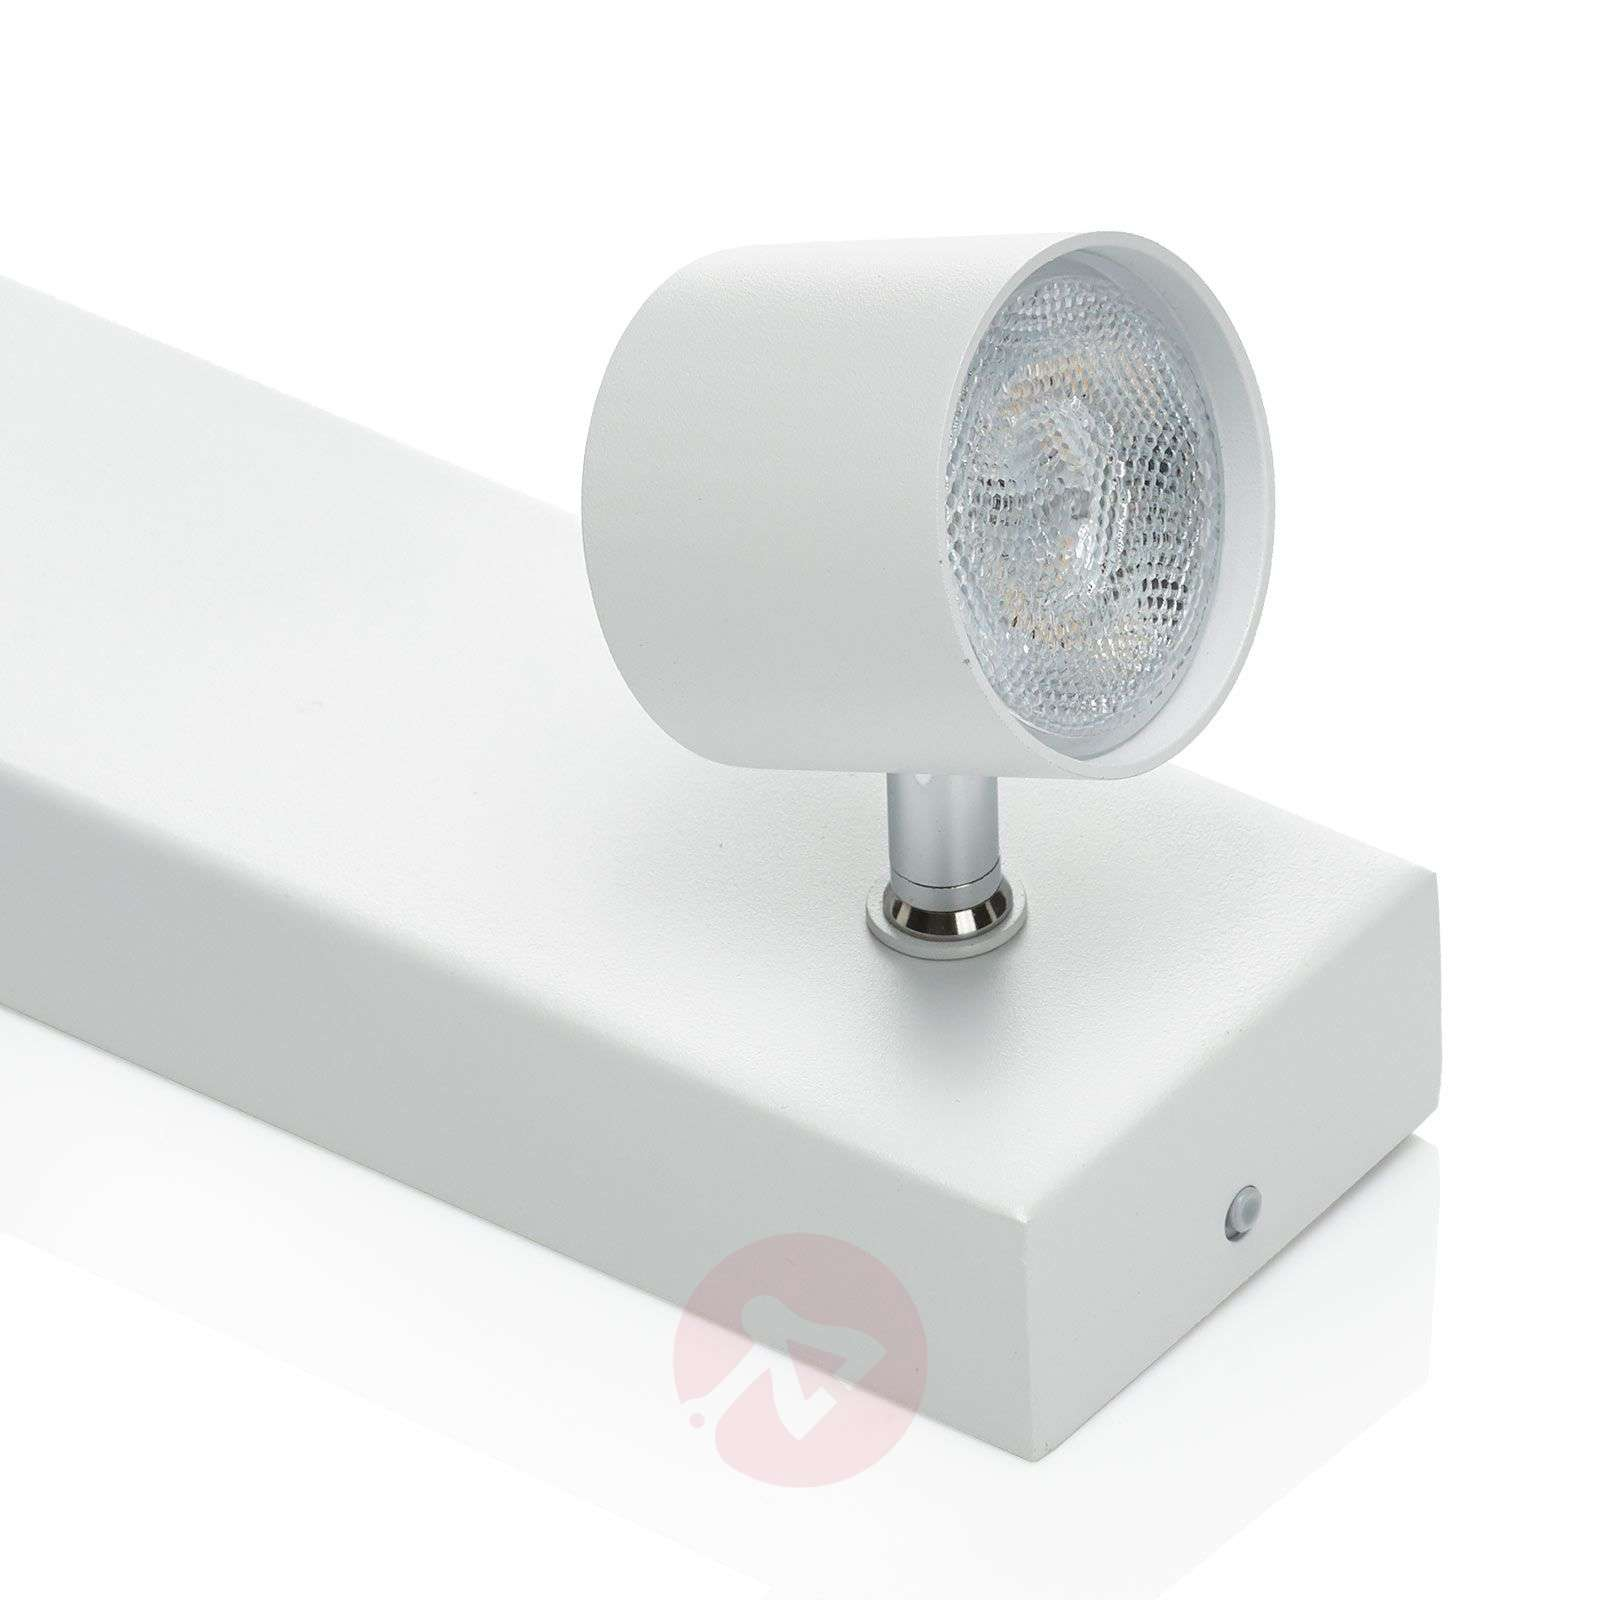 Star four-bulb LED ceiling spot, white, WarmGlow-7531965-02